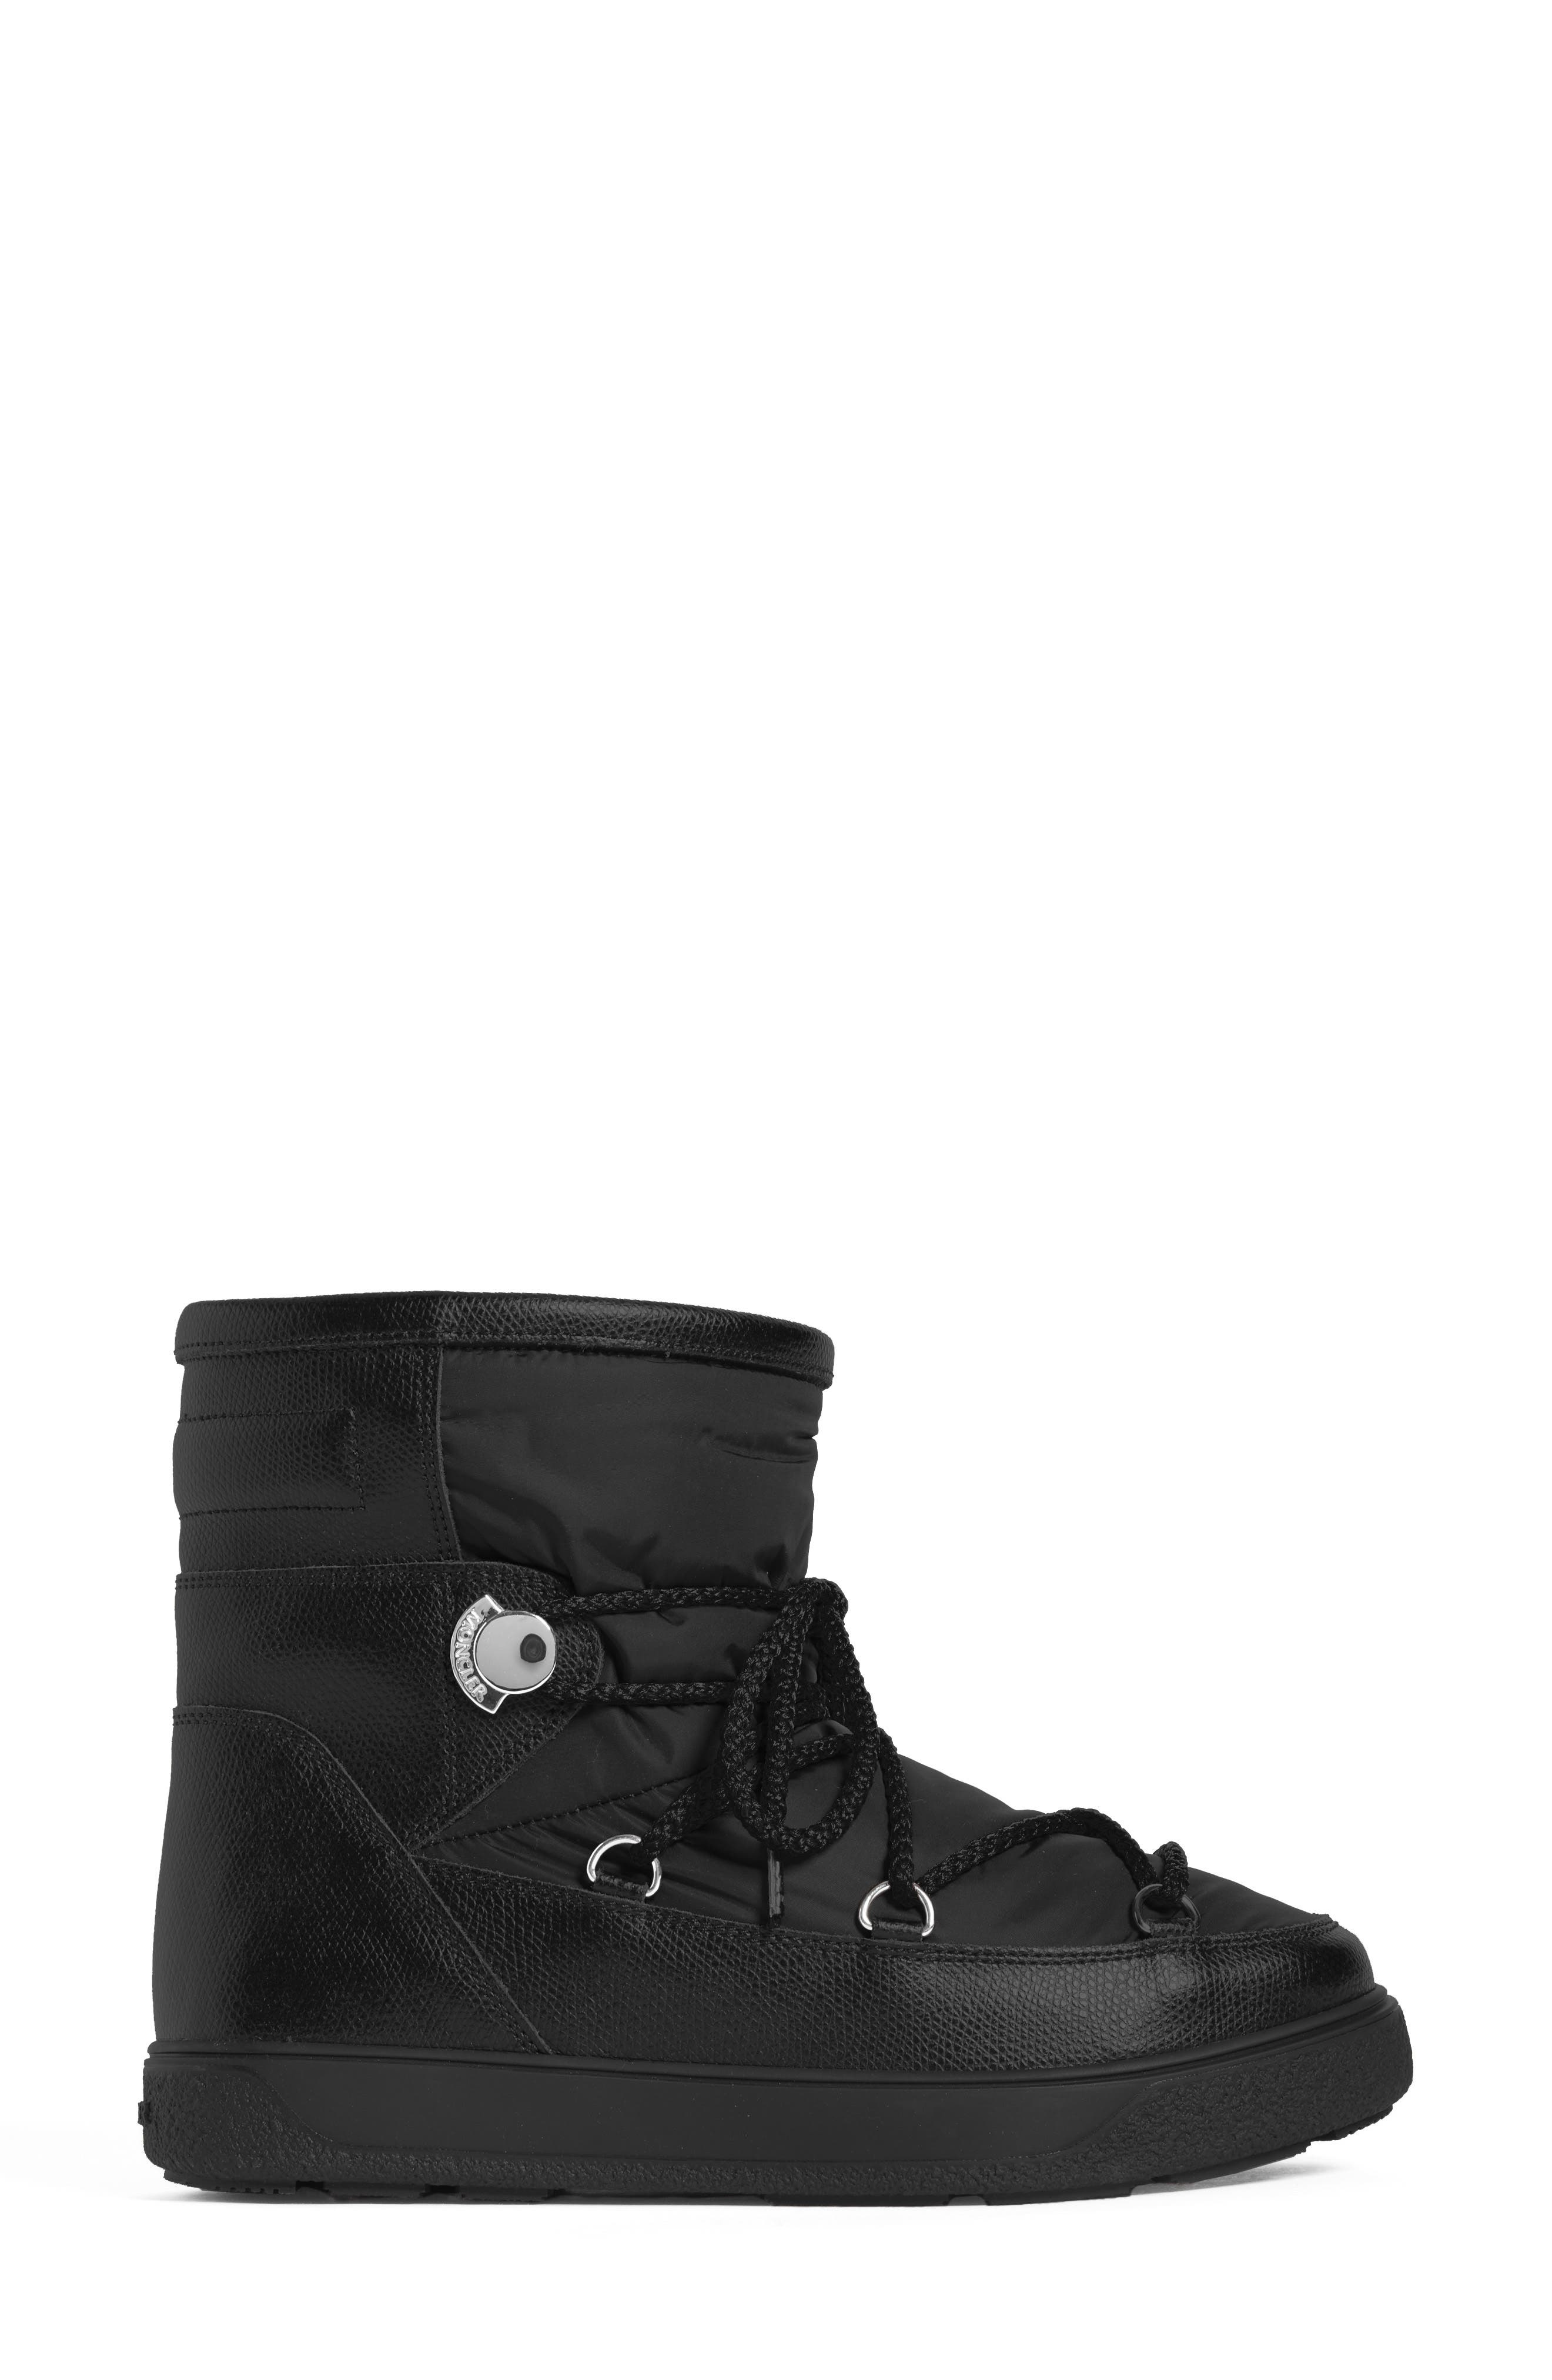 New Fanny Stivale Short Moon Boots,                             Alternate thumbnail 3, color,                             Black